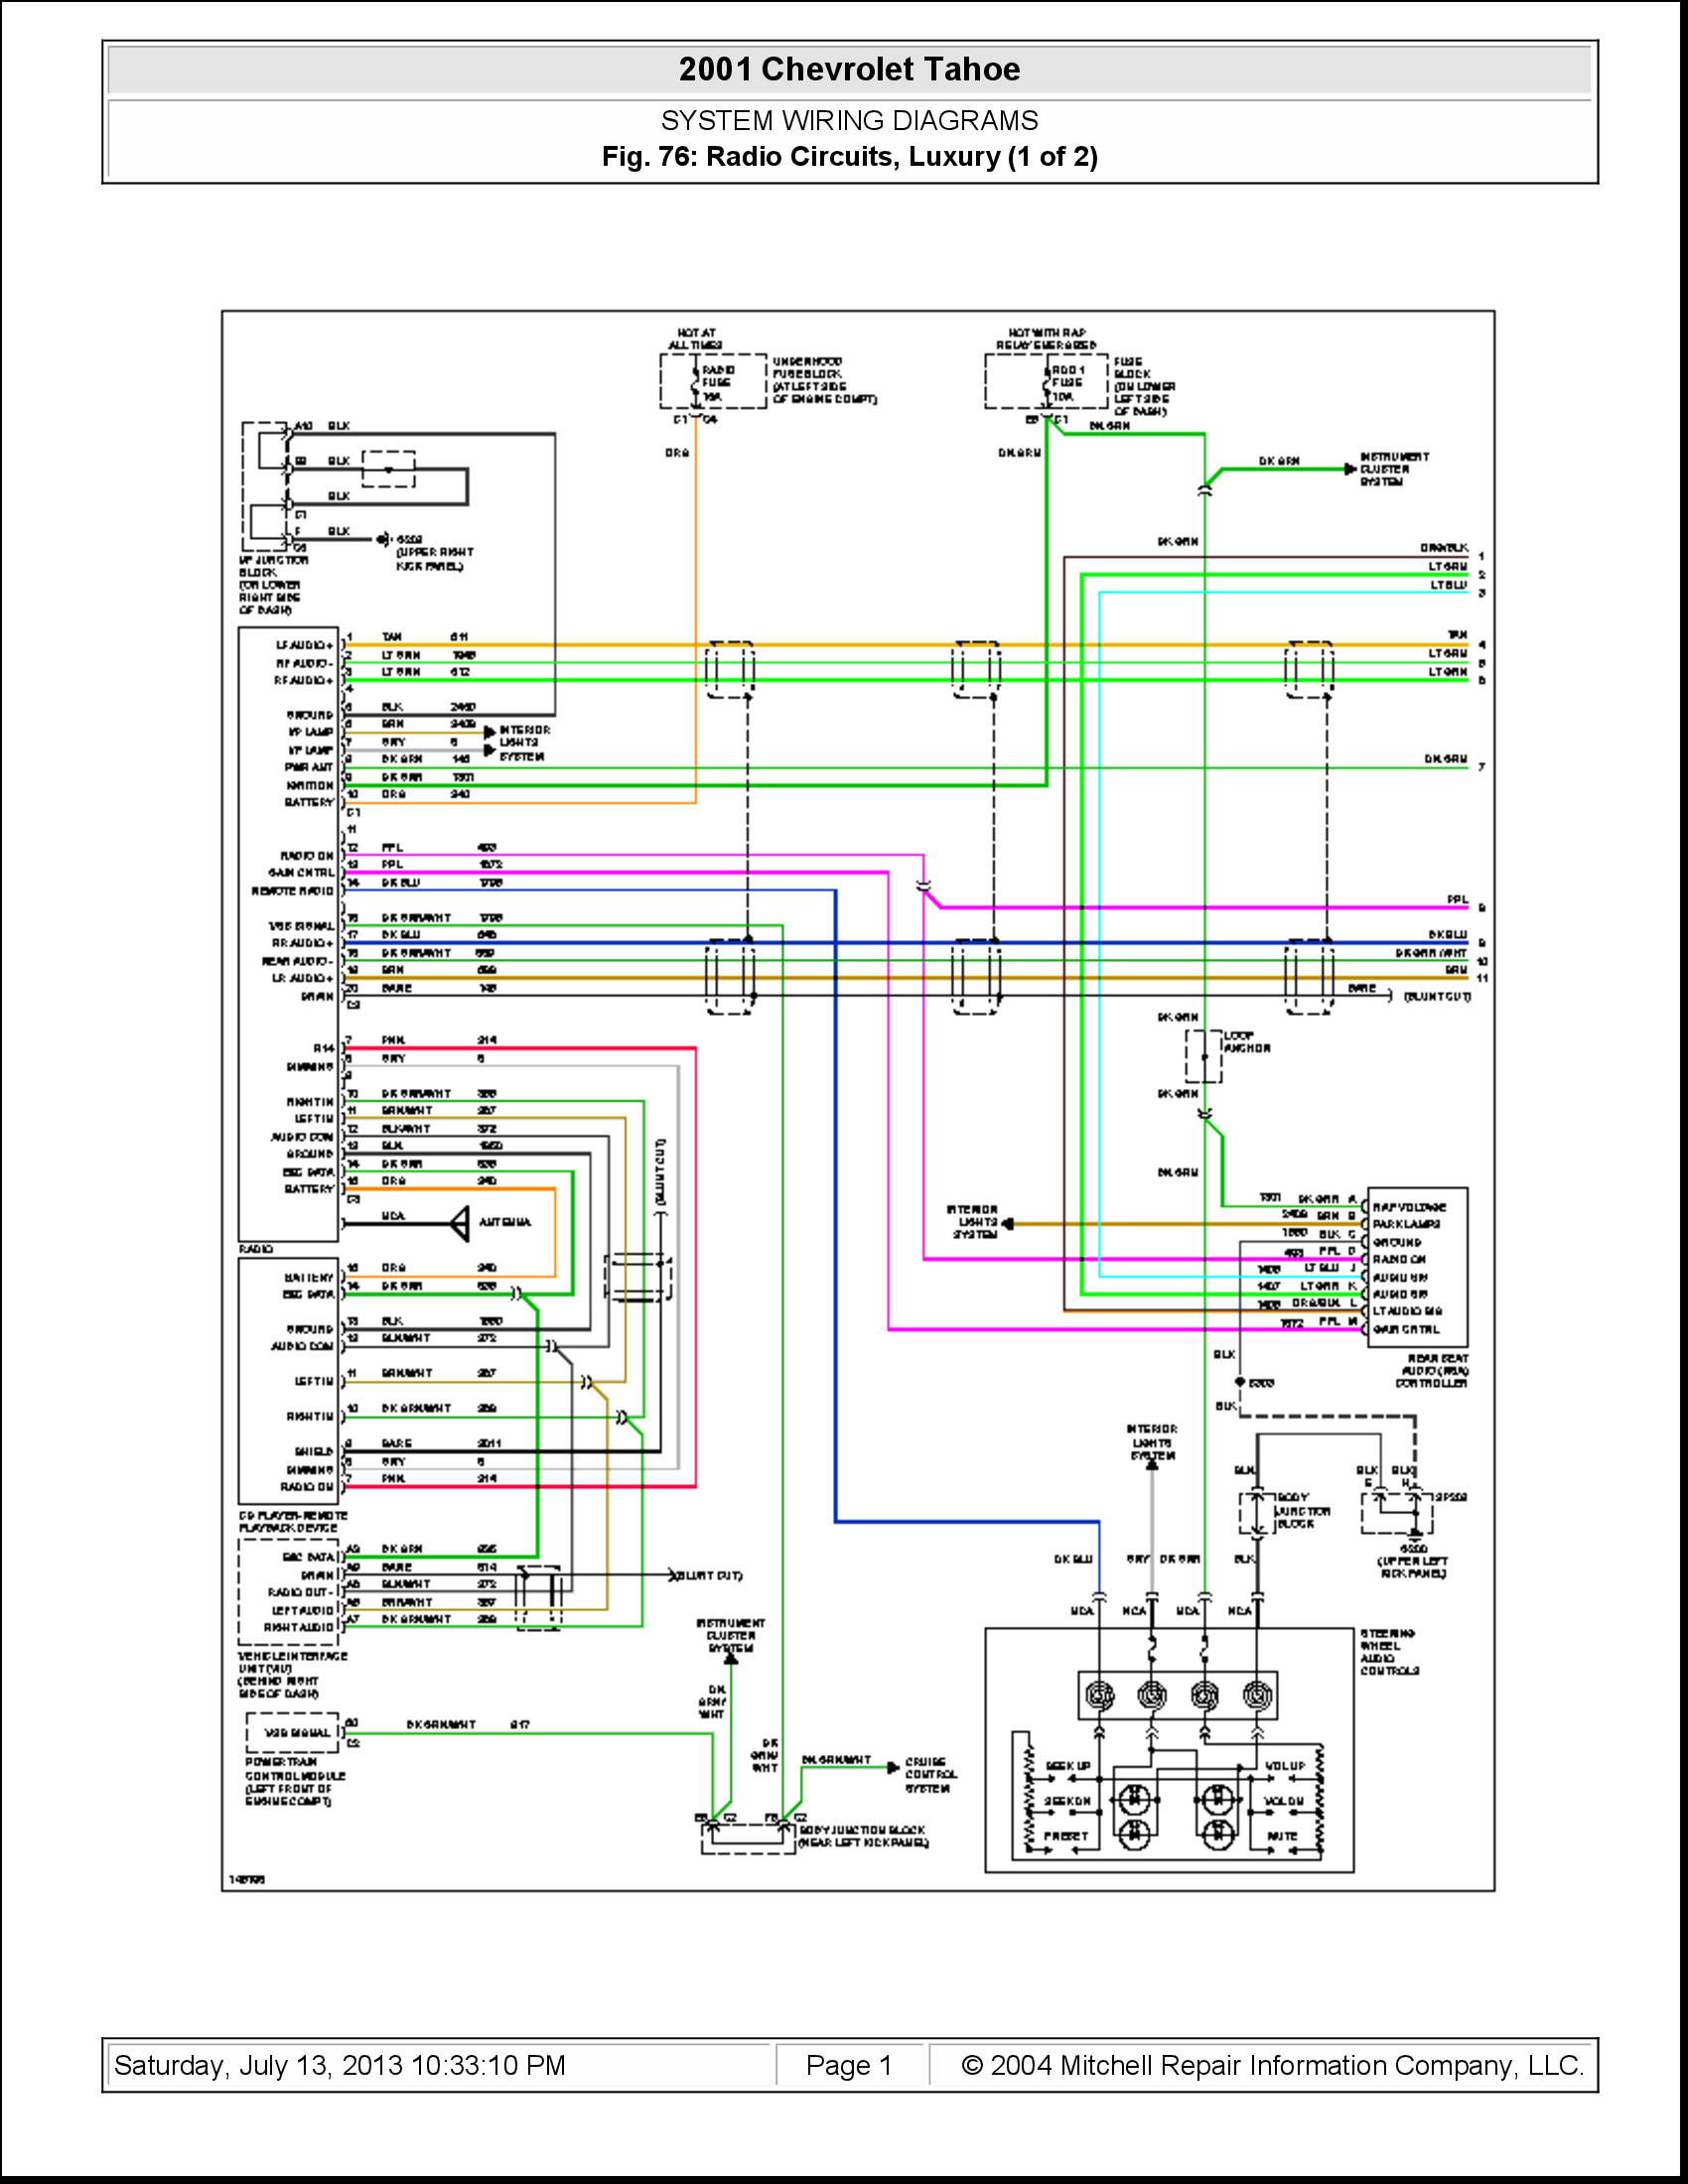 chevy s10 radio wiring diagram Download-1997 Chevy S10 Radio Wiring Diagram 18-o